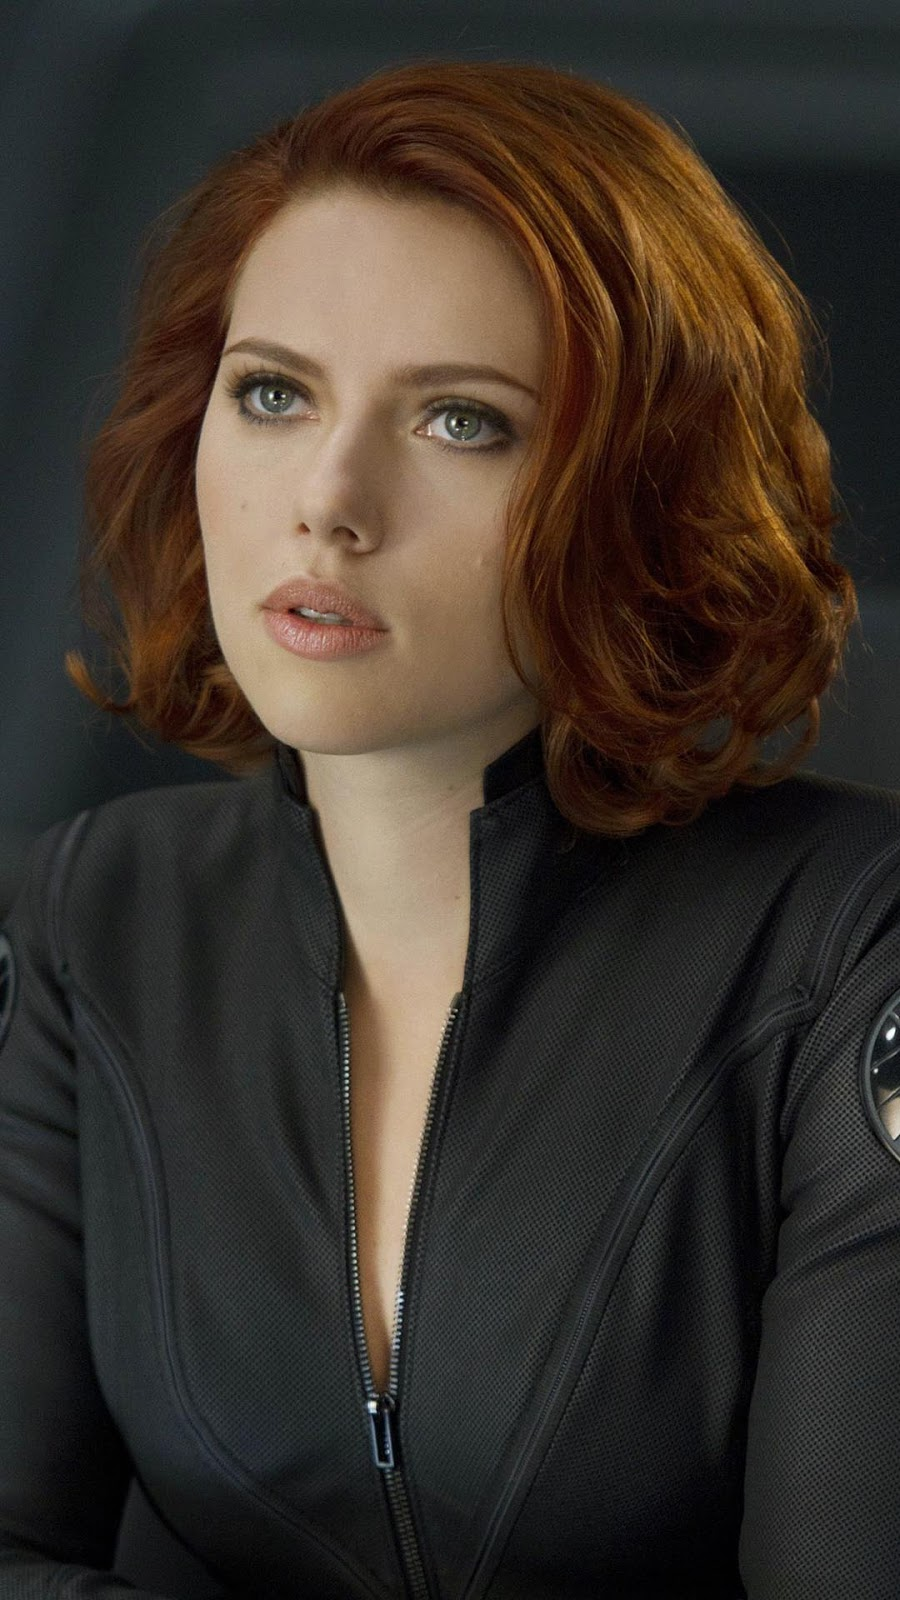 Blonder Hair Black Widow Mobile Wallpaper